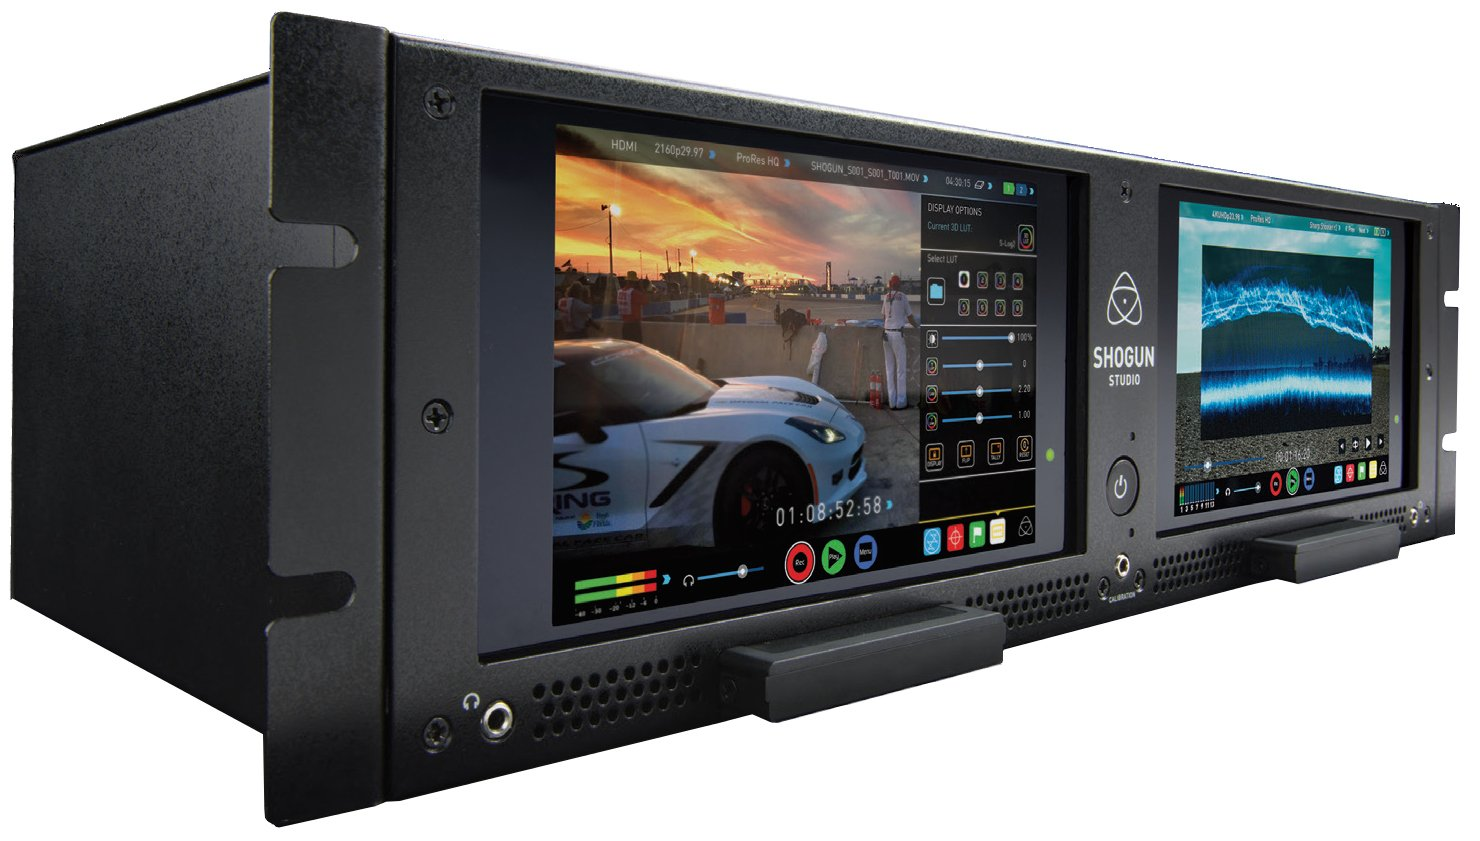 Atomos Shogun Studio All-In-One 4K Apple ProRes/RAW Monitor ATO-SHOGUN-STUDIO